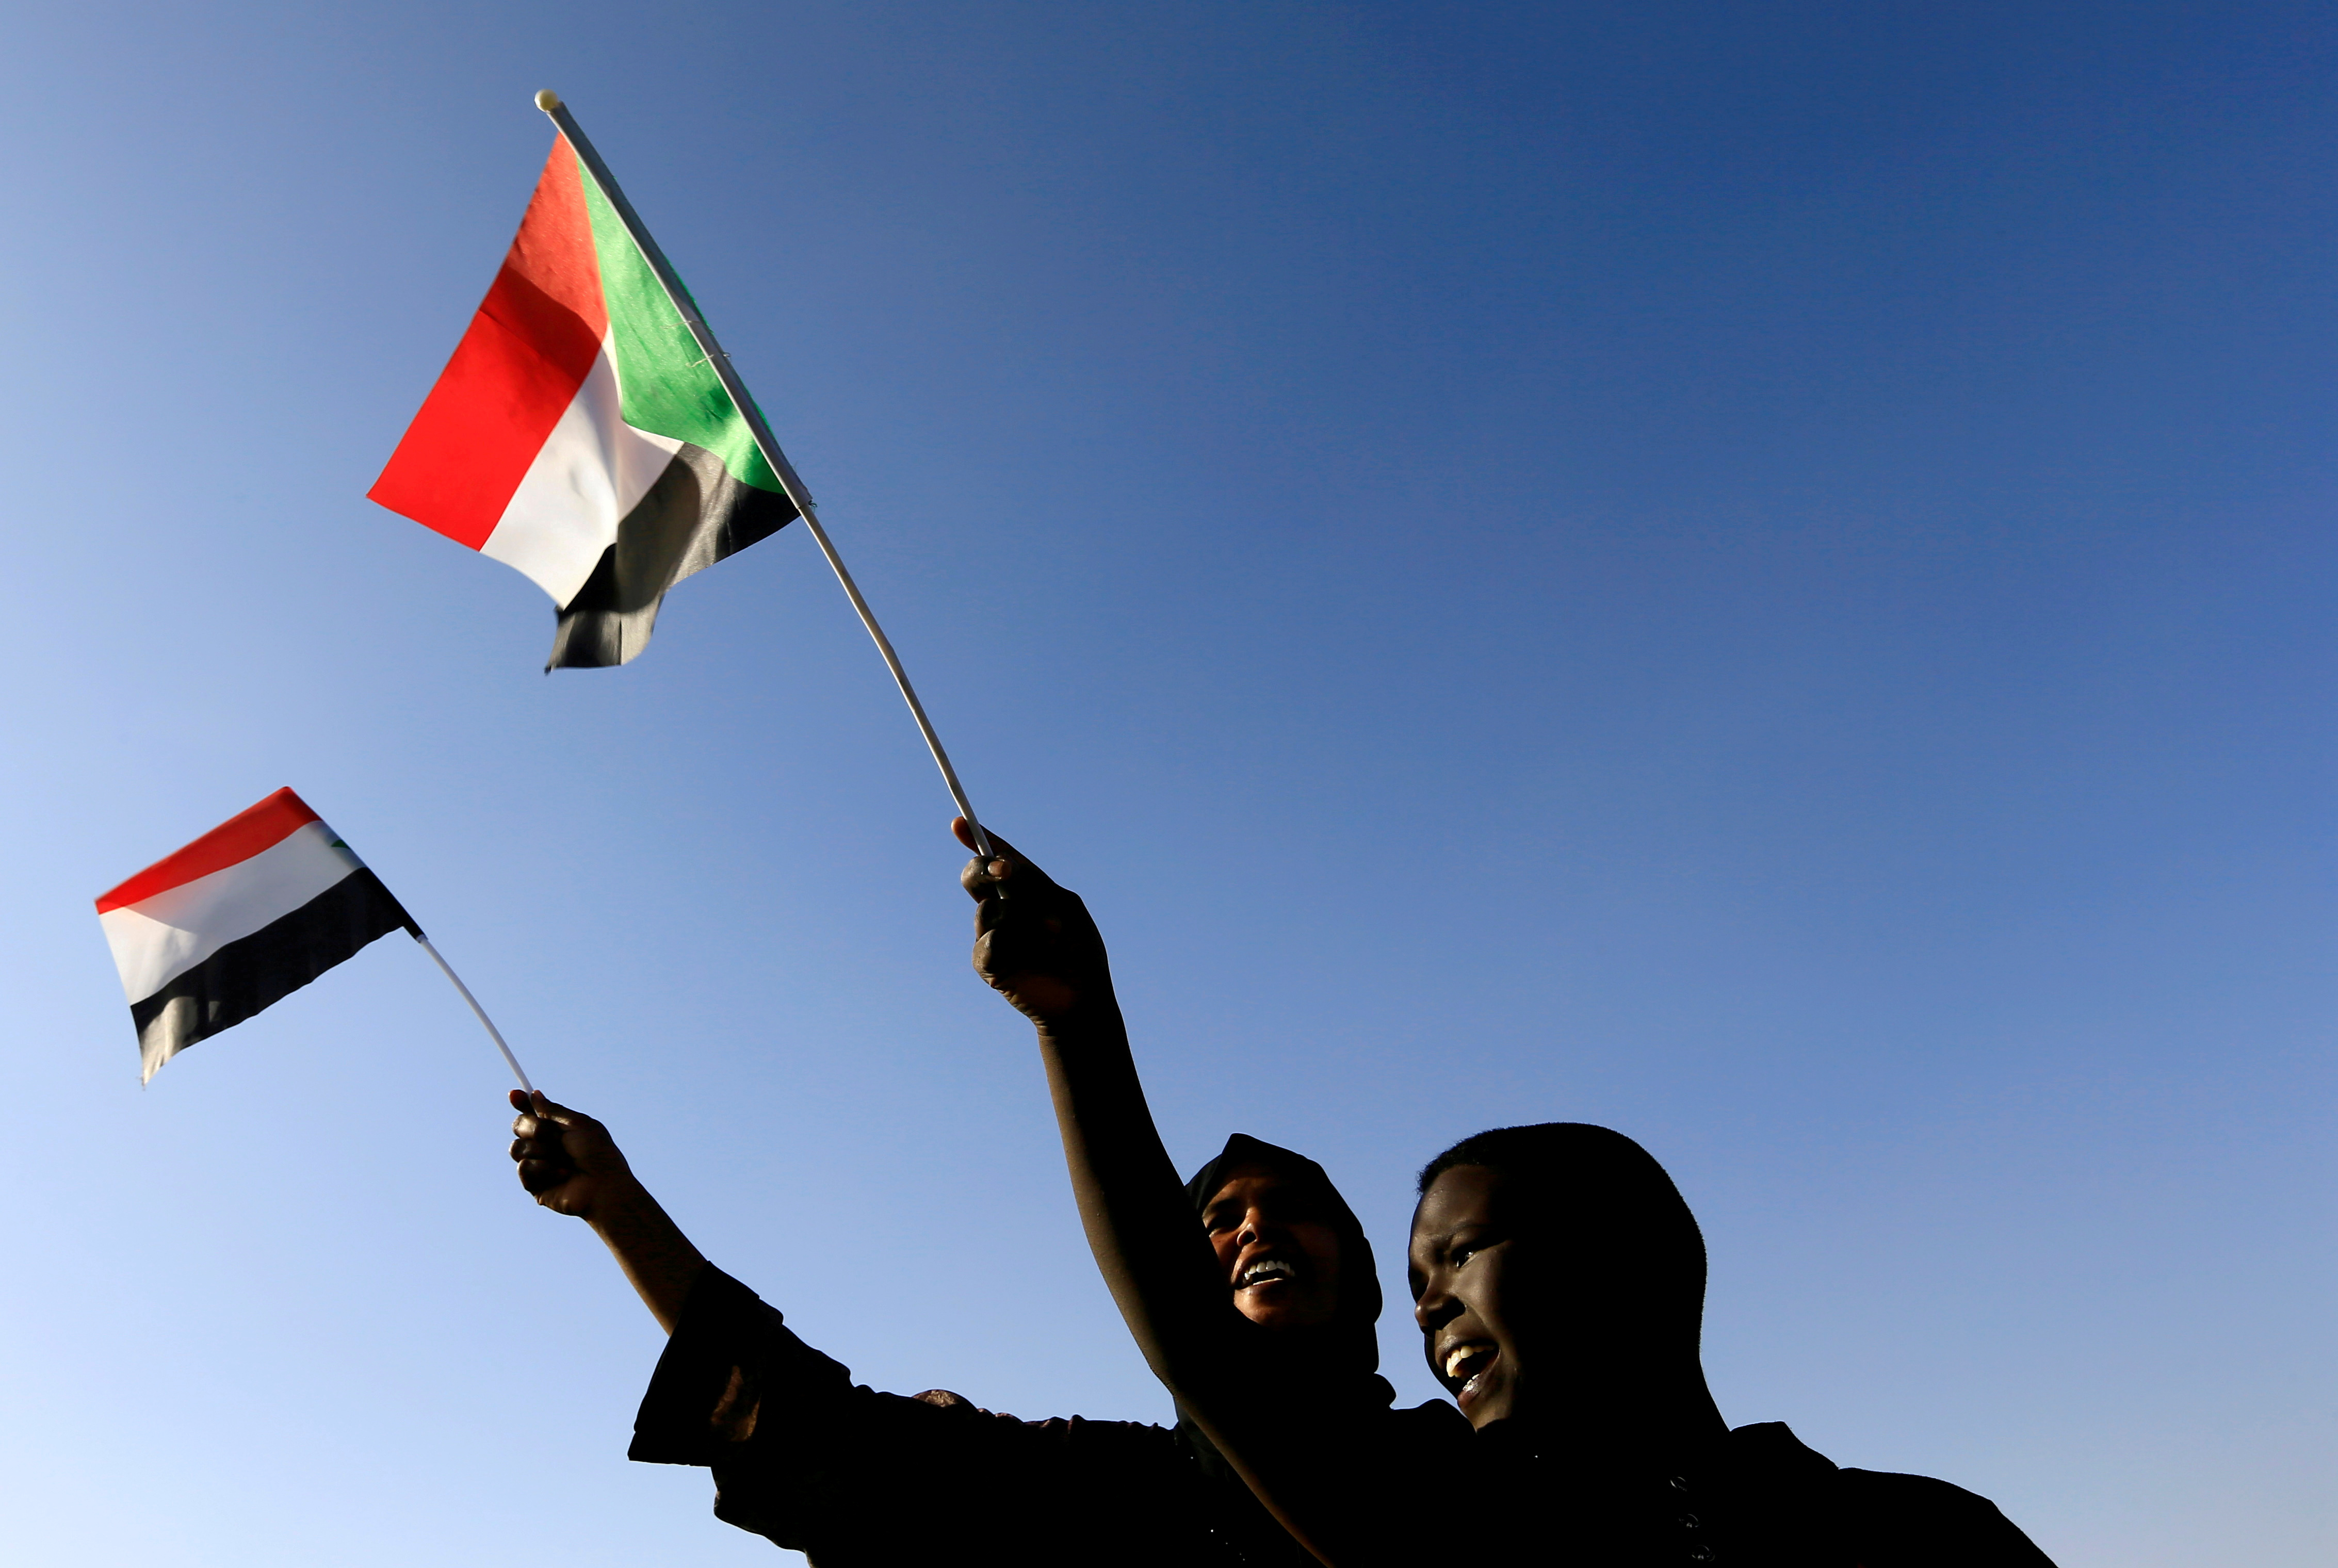 Sudanese civilians wave their national flag as they gather at the freedom square during the first anniversary of the start of the uprising that toppled long-time ruler Omar al-Bashir, in Khartoum, Sudan December 19, 2019. REUTERS/Mohamed Nureldin Abdallah/File Photo